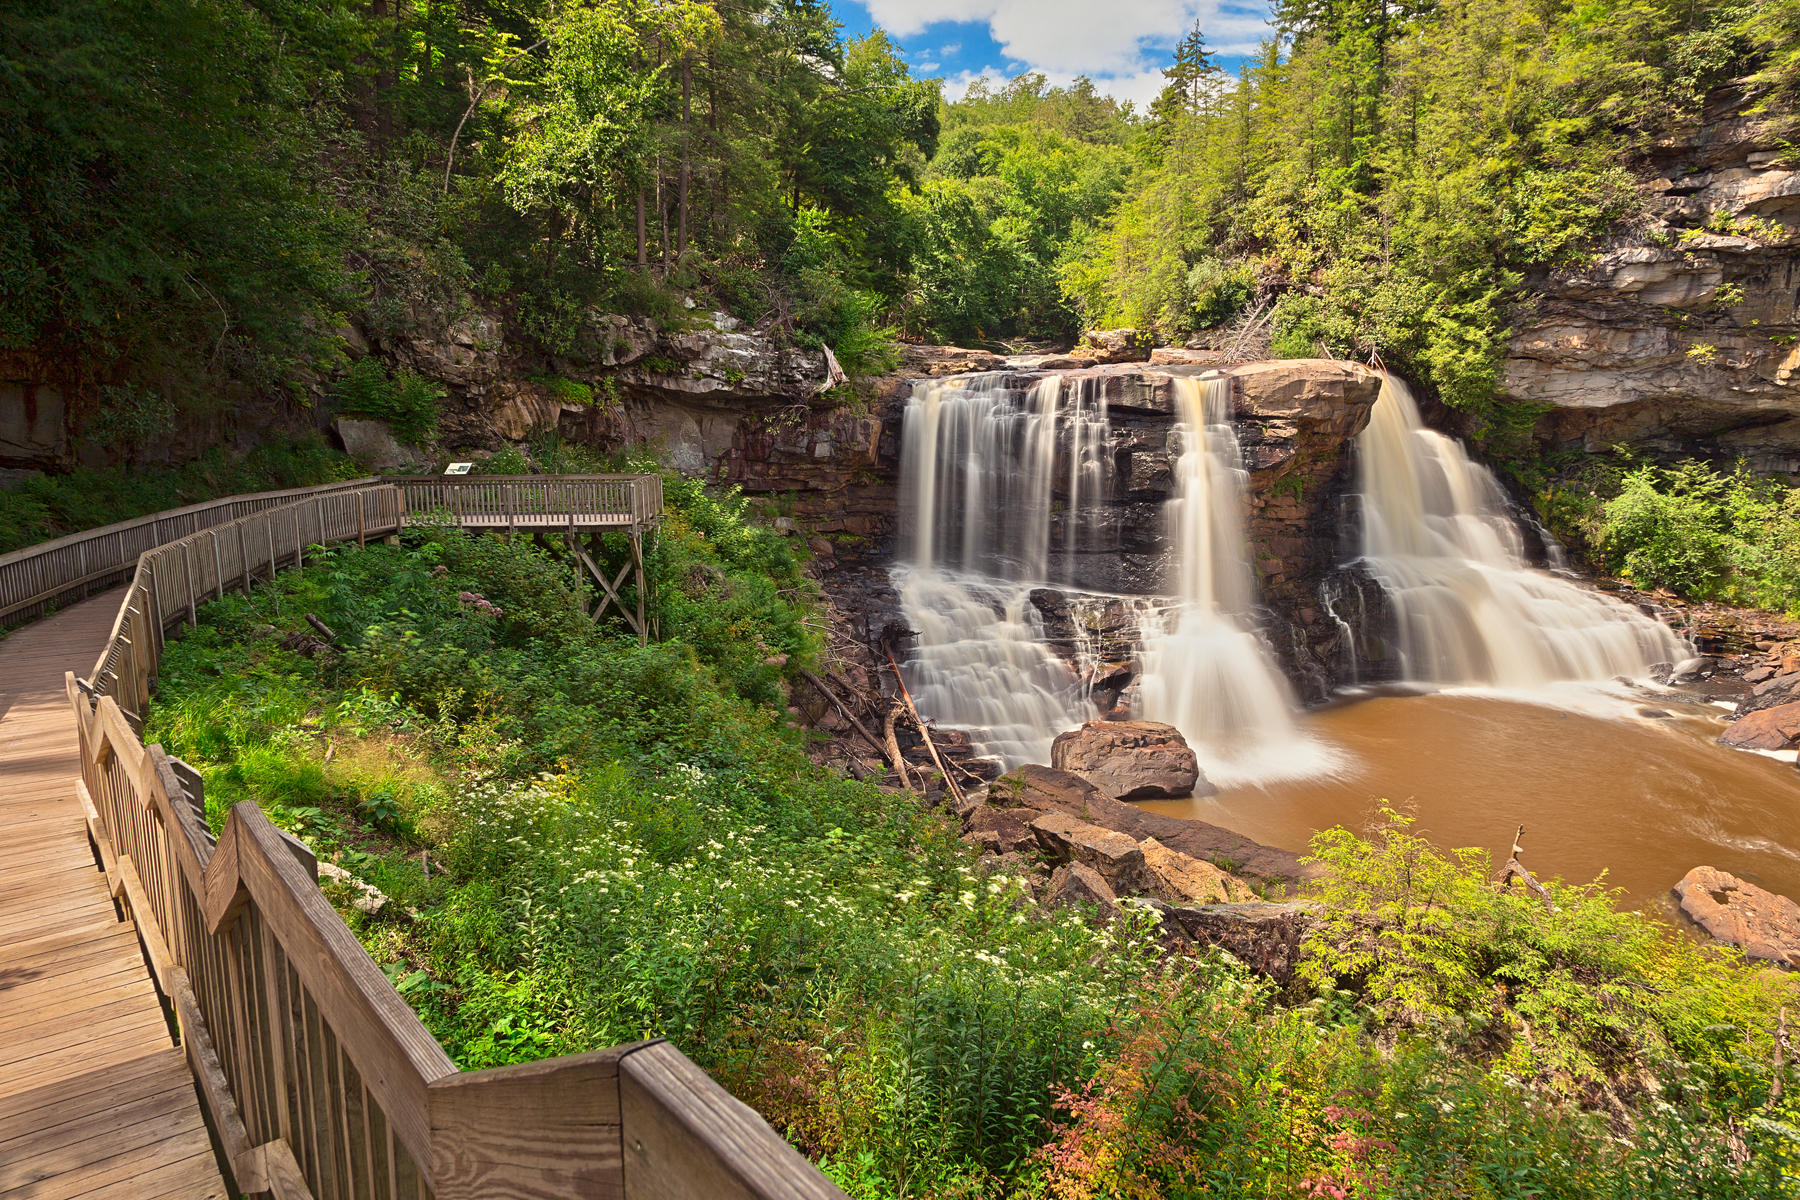 Blackwater falls - hdr photo